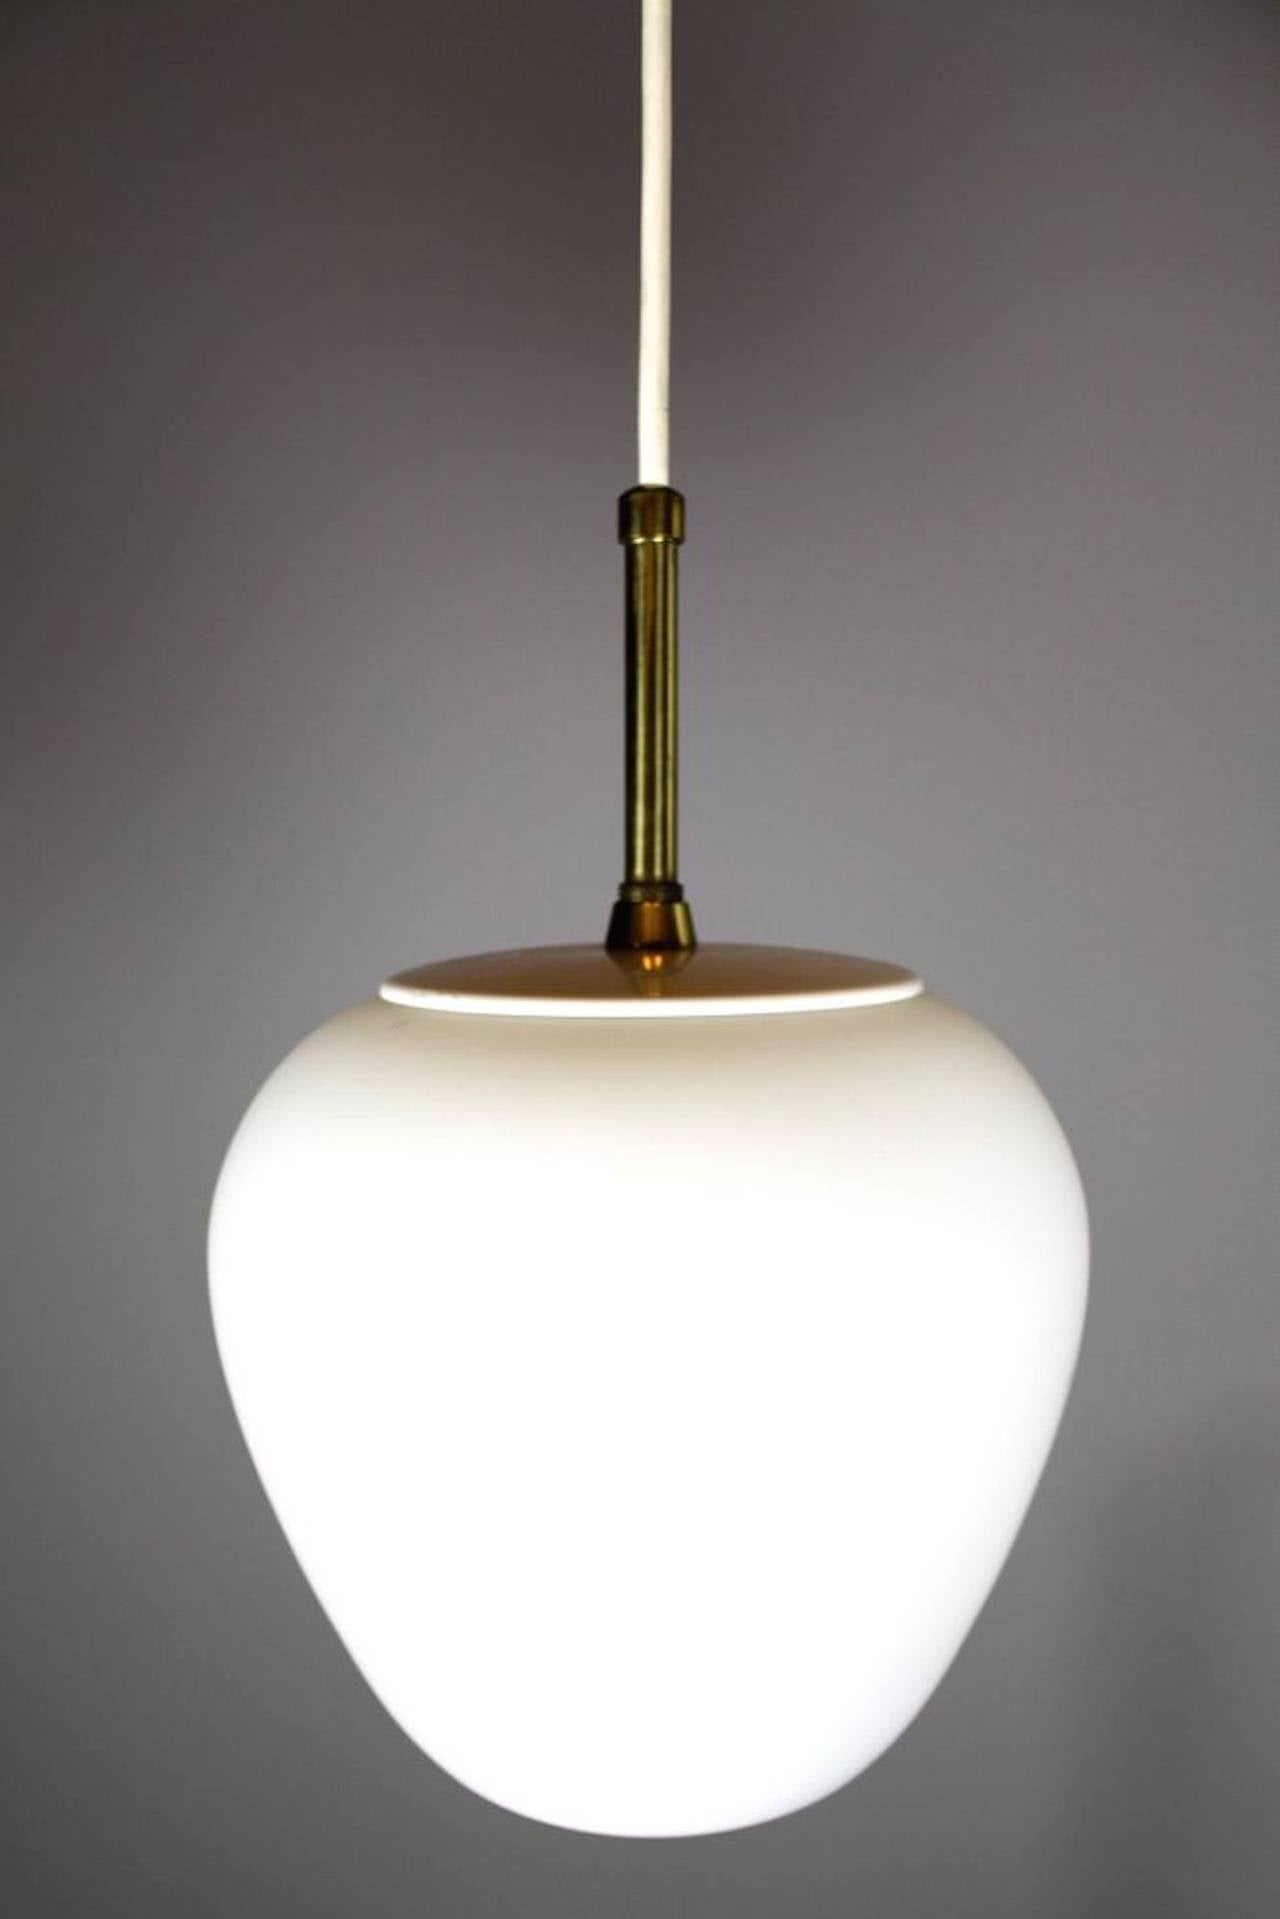 Mid century modern italian style pendant lights at 1stdibs for Mid century modern light fixtures